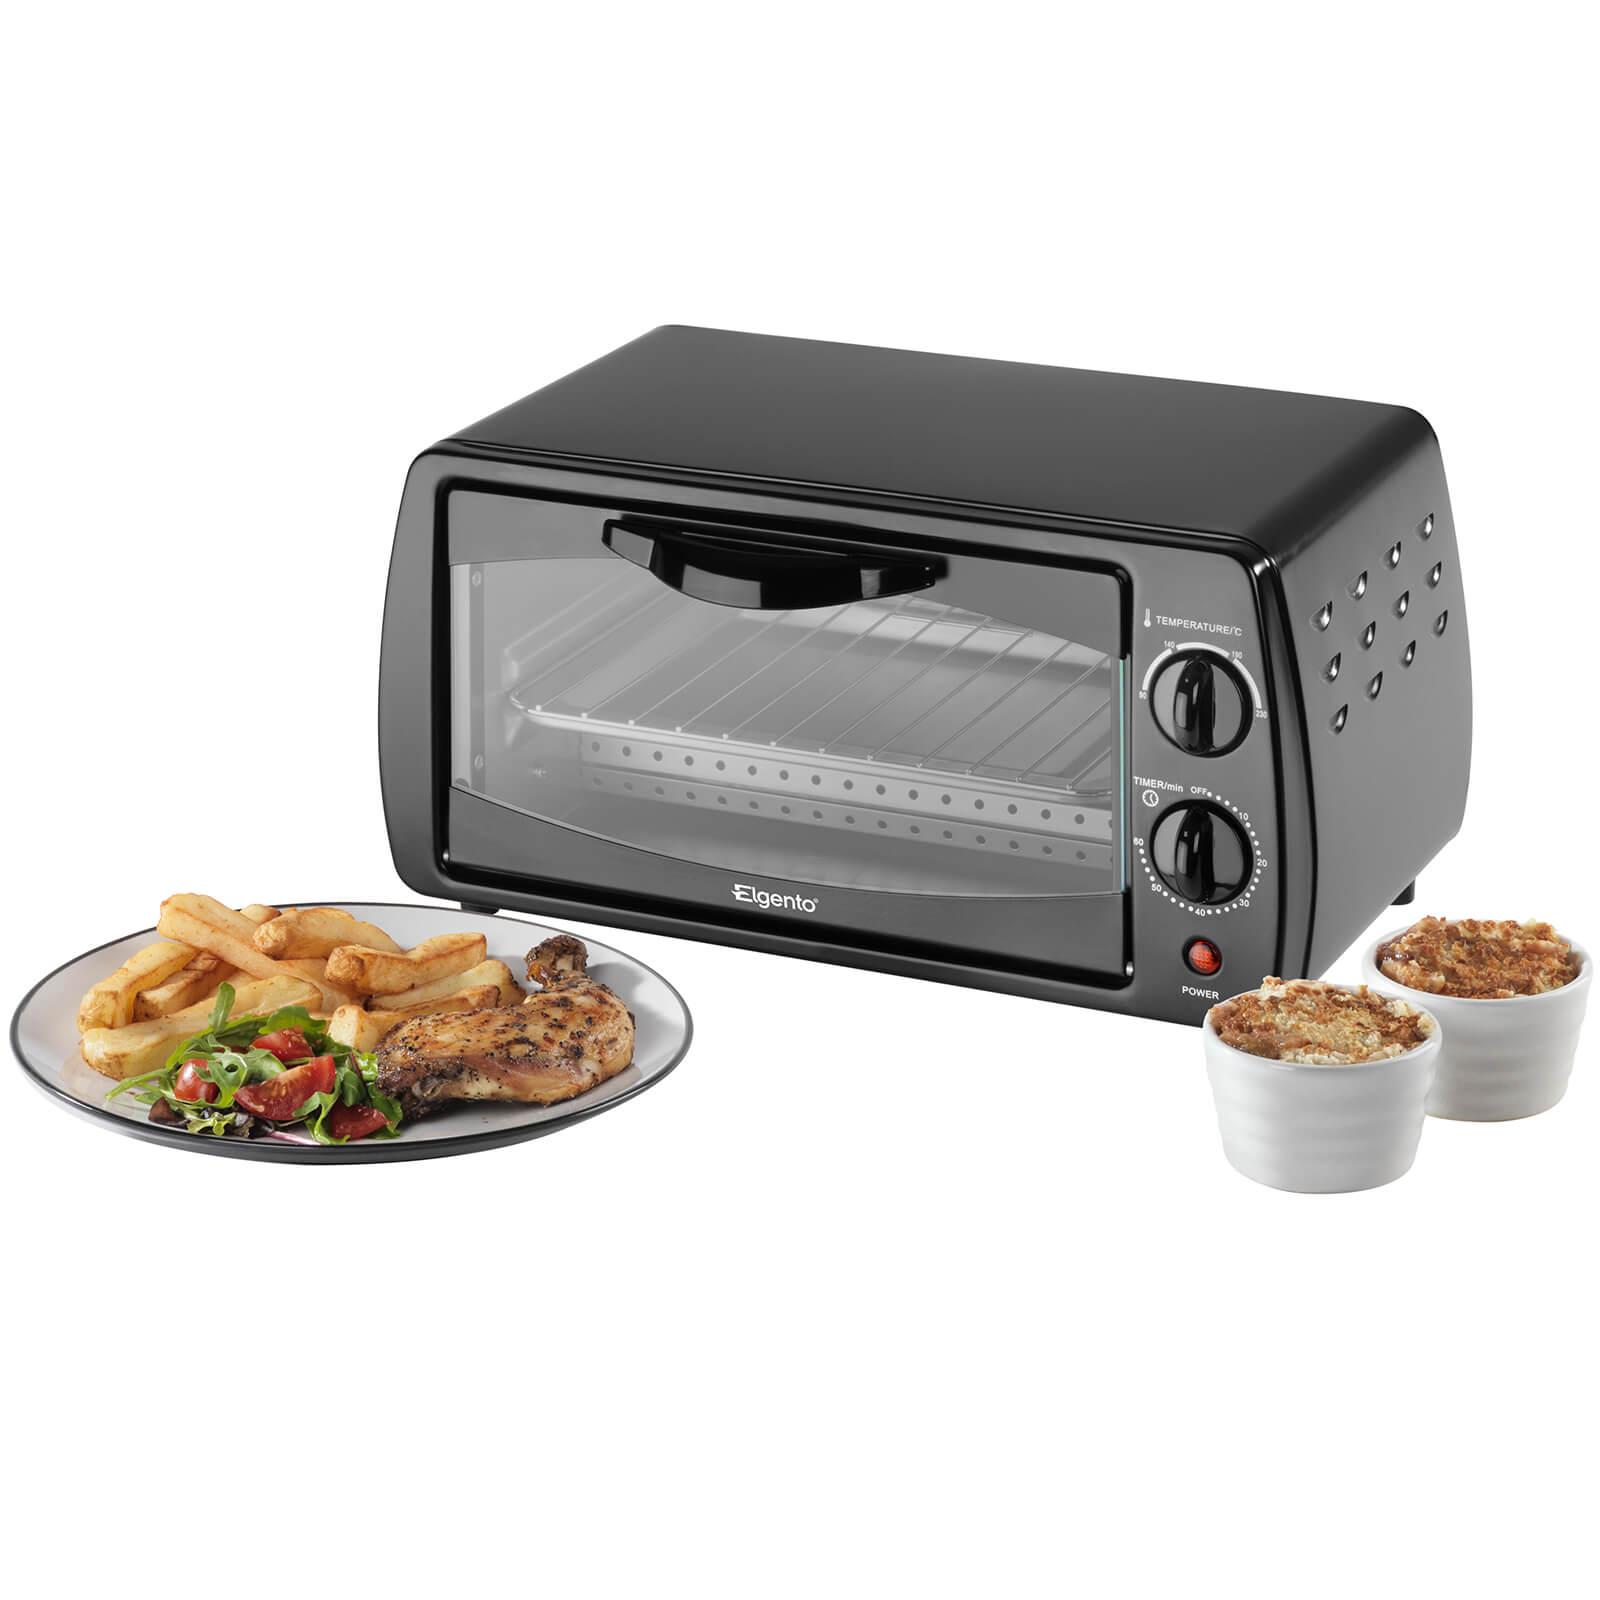 Elgento E14025 Mini Oven - Black - 9L